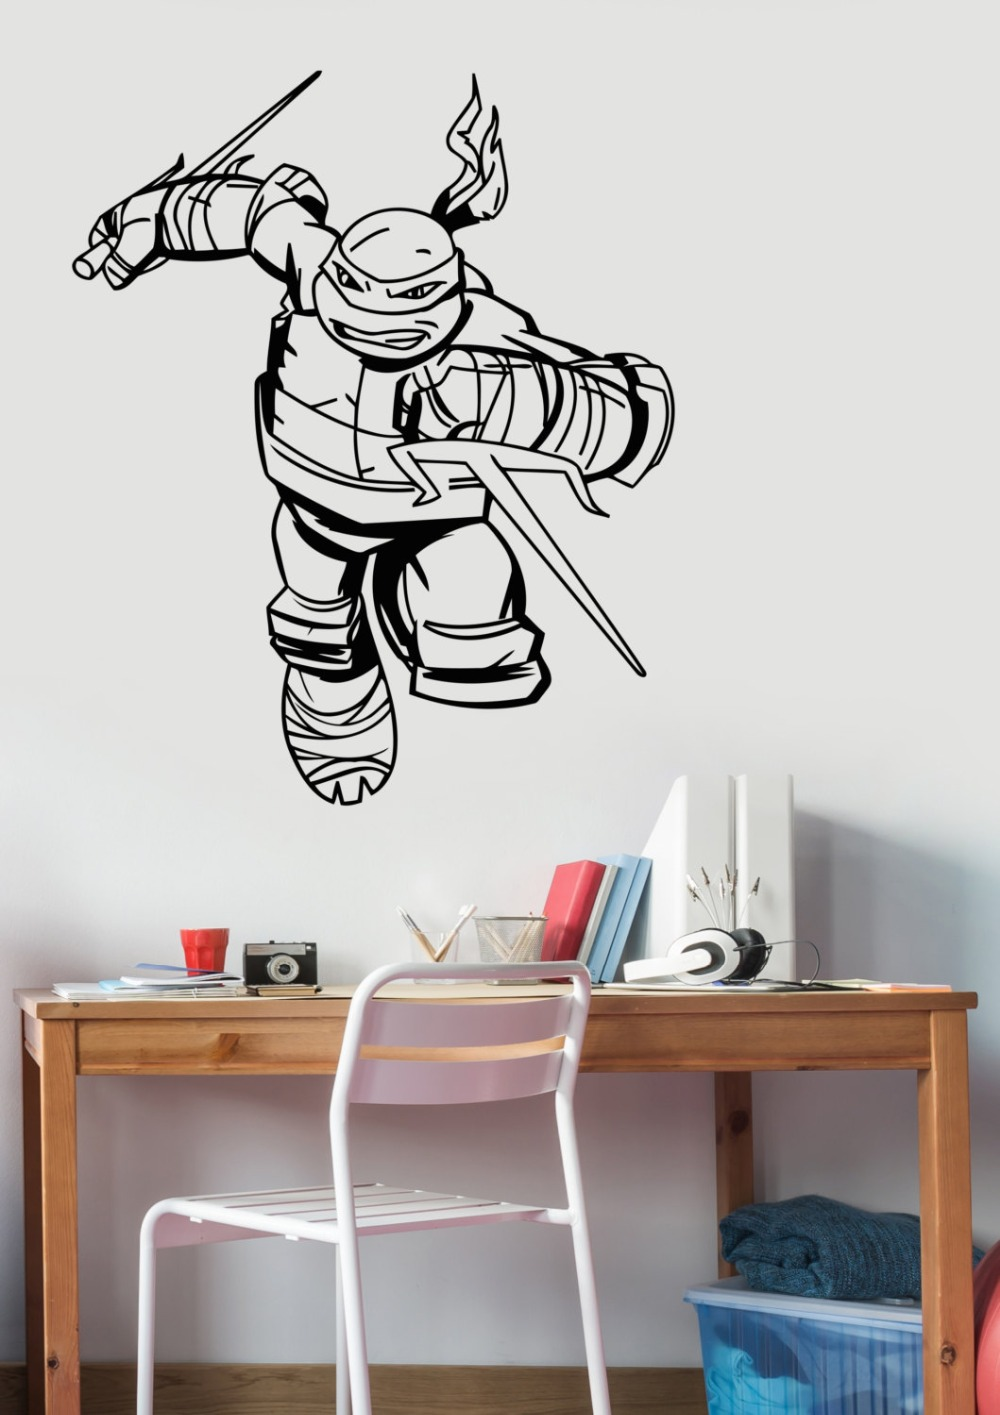 Online shop ninja turtles wall decal boys bedroom superhero wall online shop ninja turtles wall decal boys bedroom superhero wall stickers home decor kids wall decals nursery decor windows sticker ww 58 aliexpress amipublicfo Images